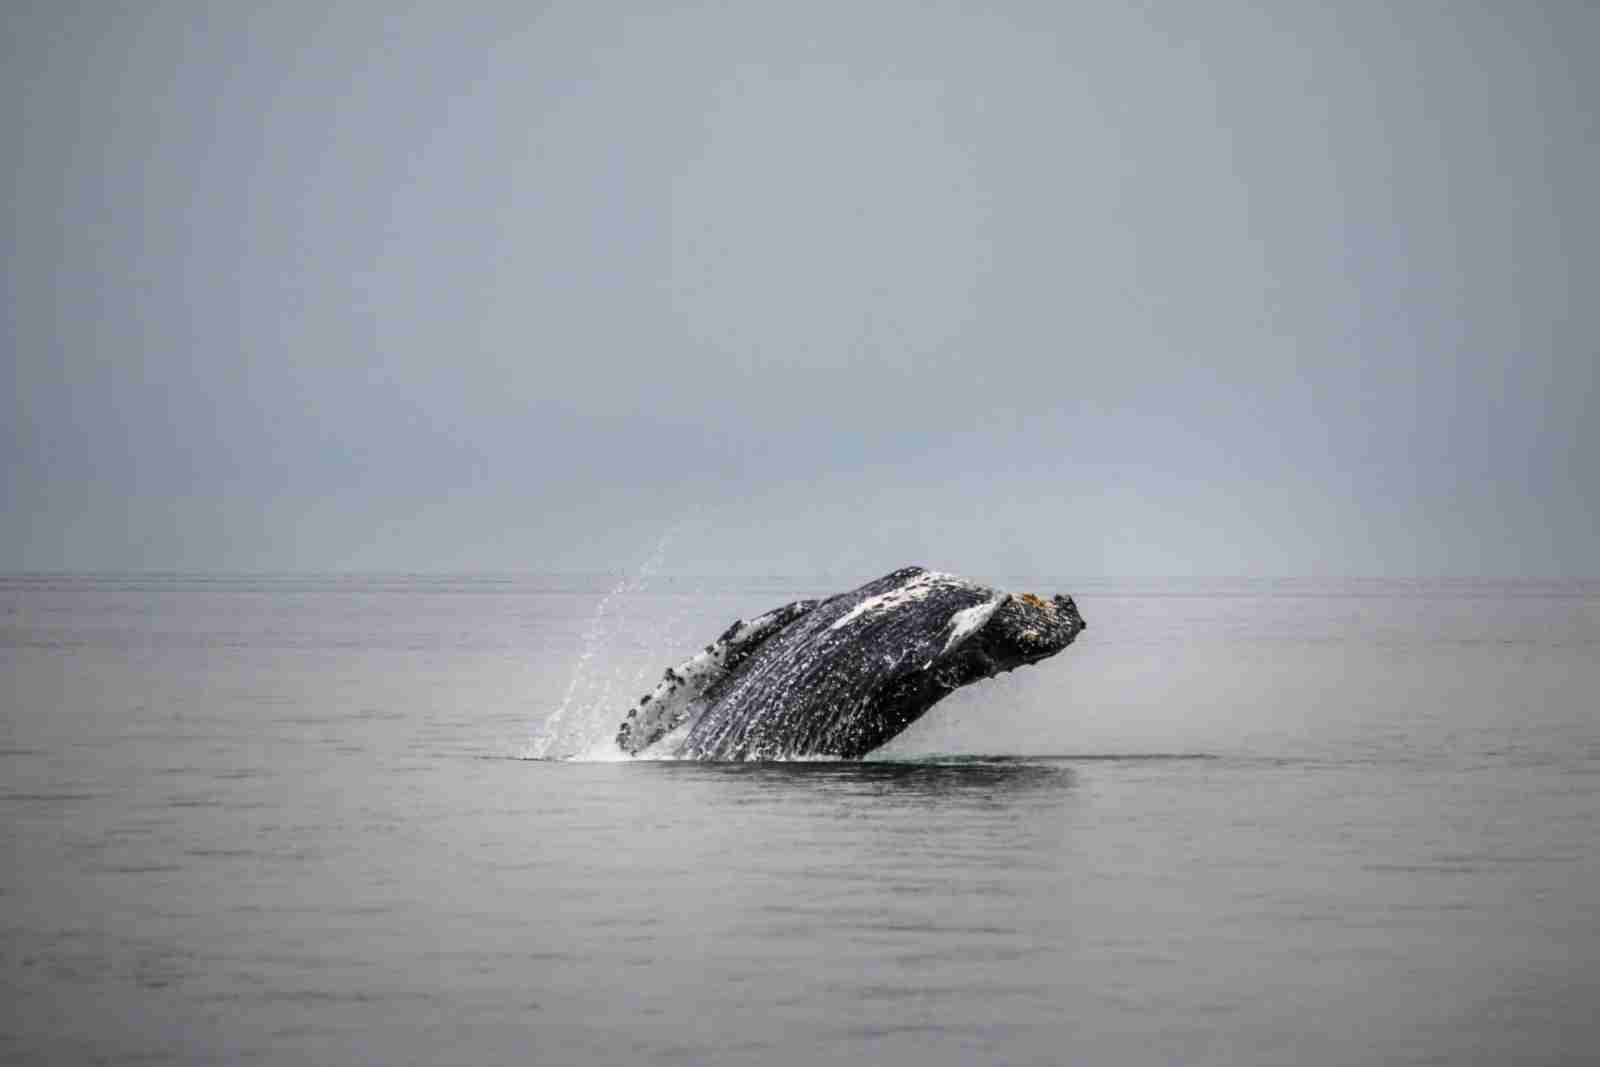 Cruises come with the opportunity to spot wildlife, like this whale in Juneau, Alaska. (Photo by Steve Halama/Unsplash)